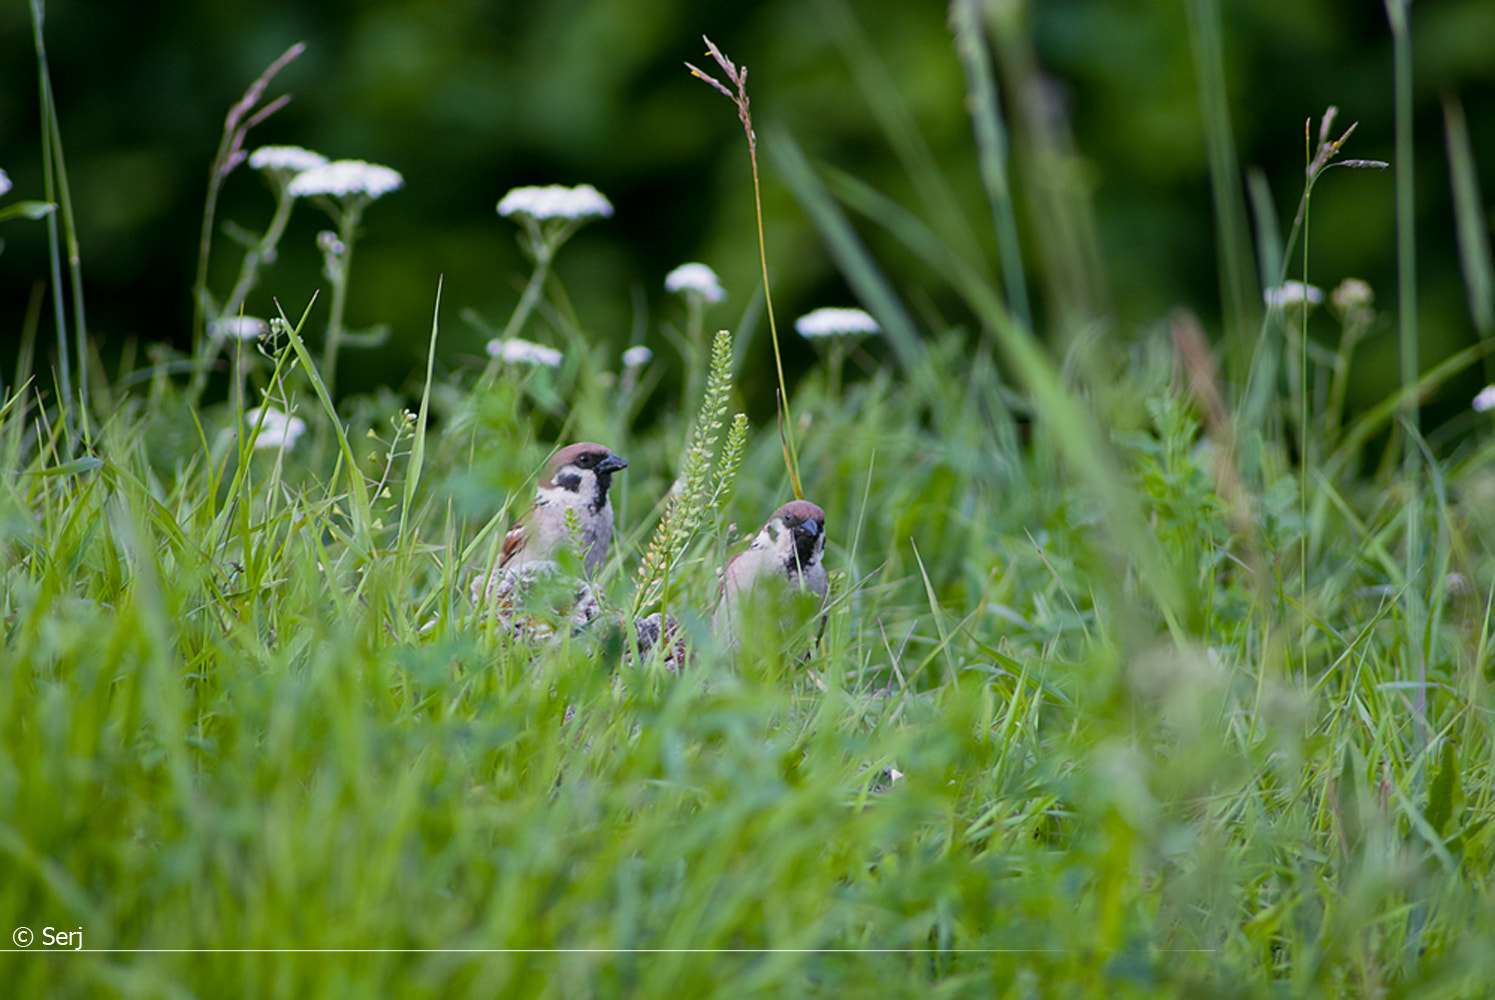 Photograph sparrows by Sergey Tikhomirov on 500px